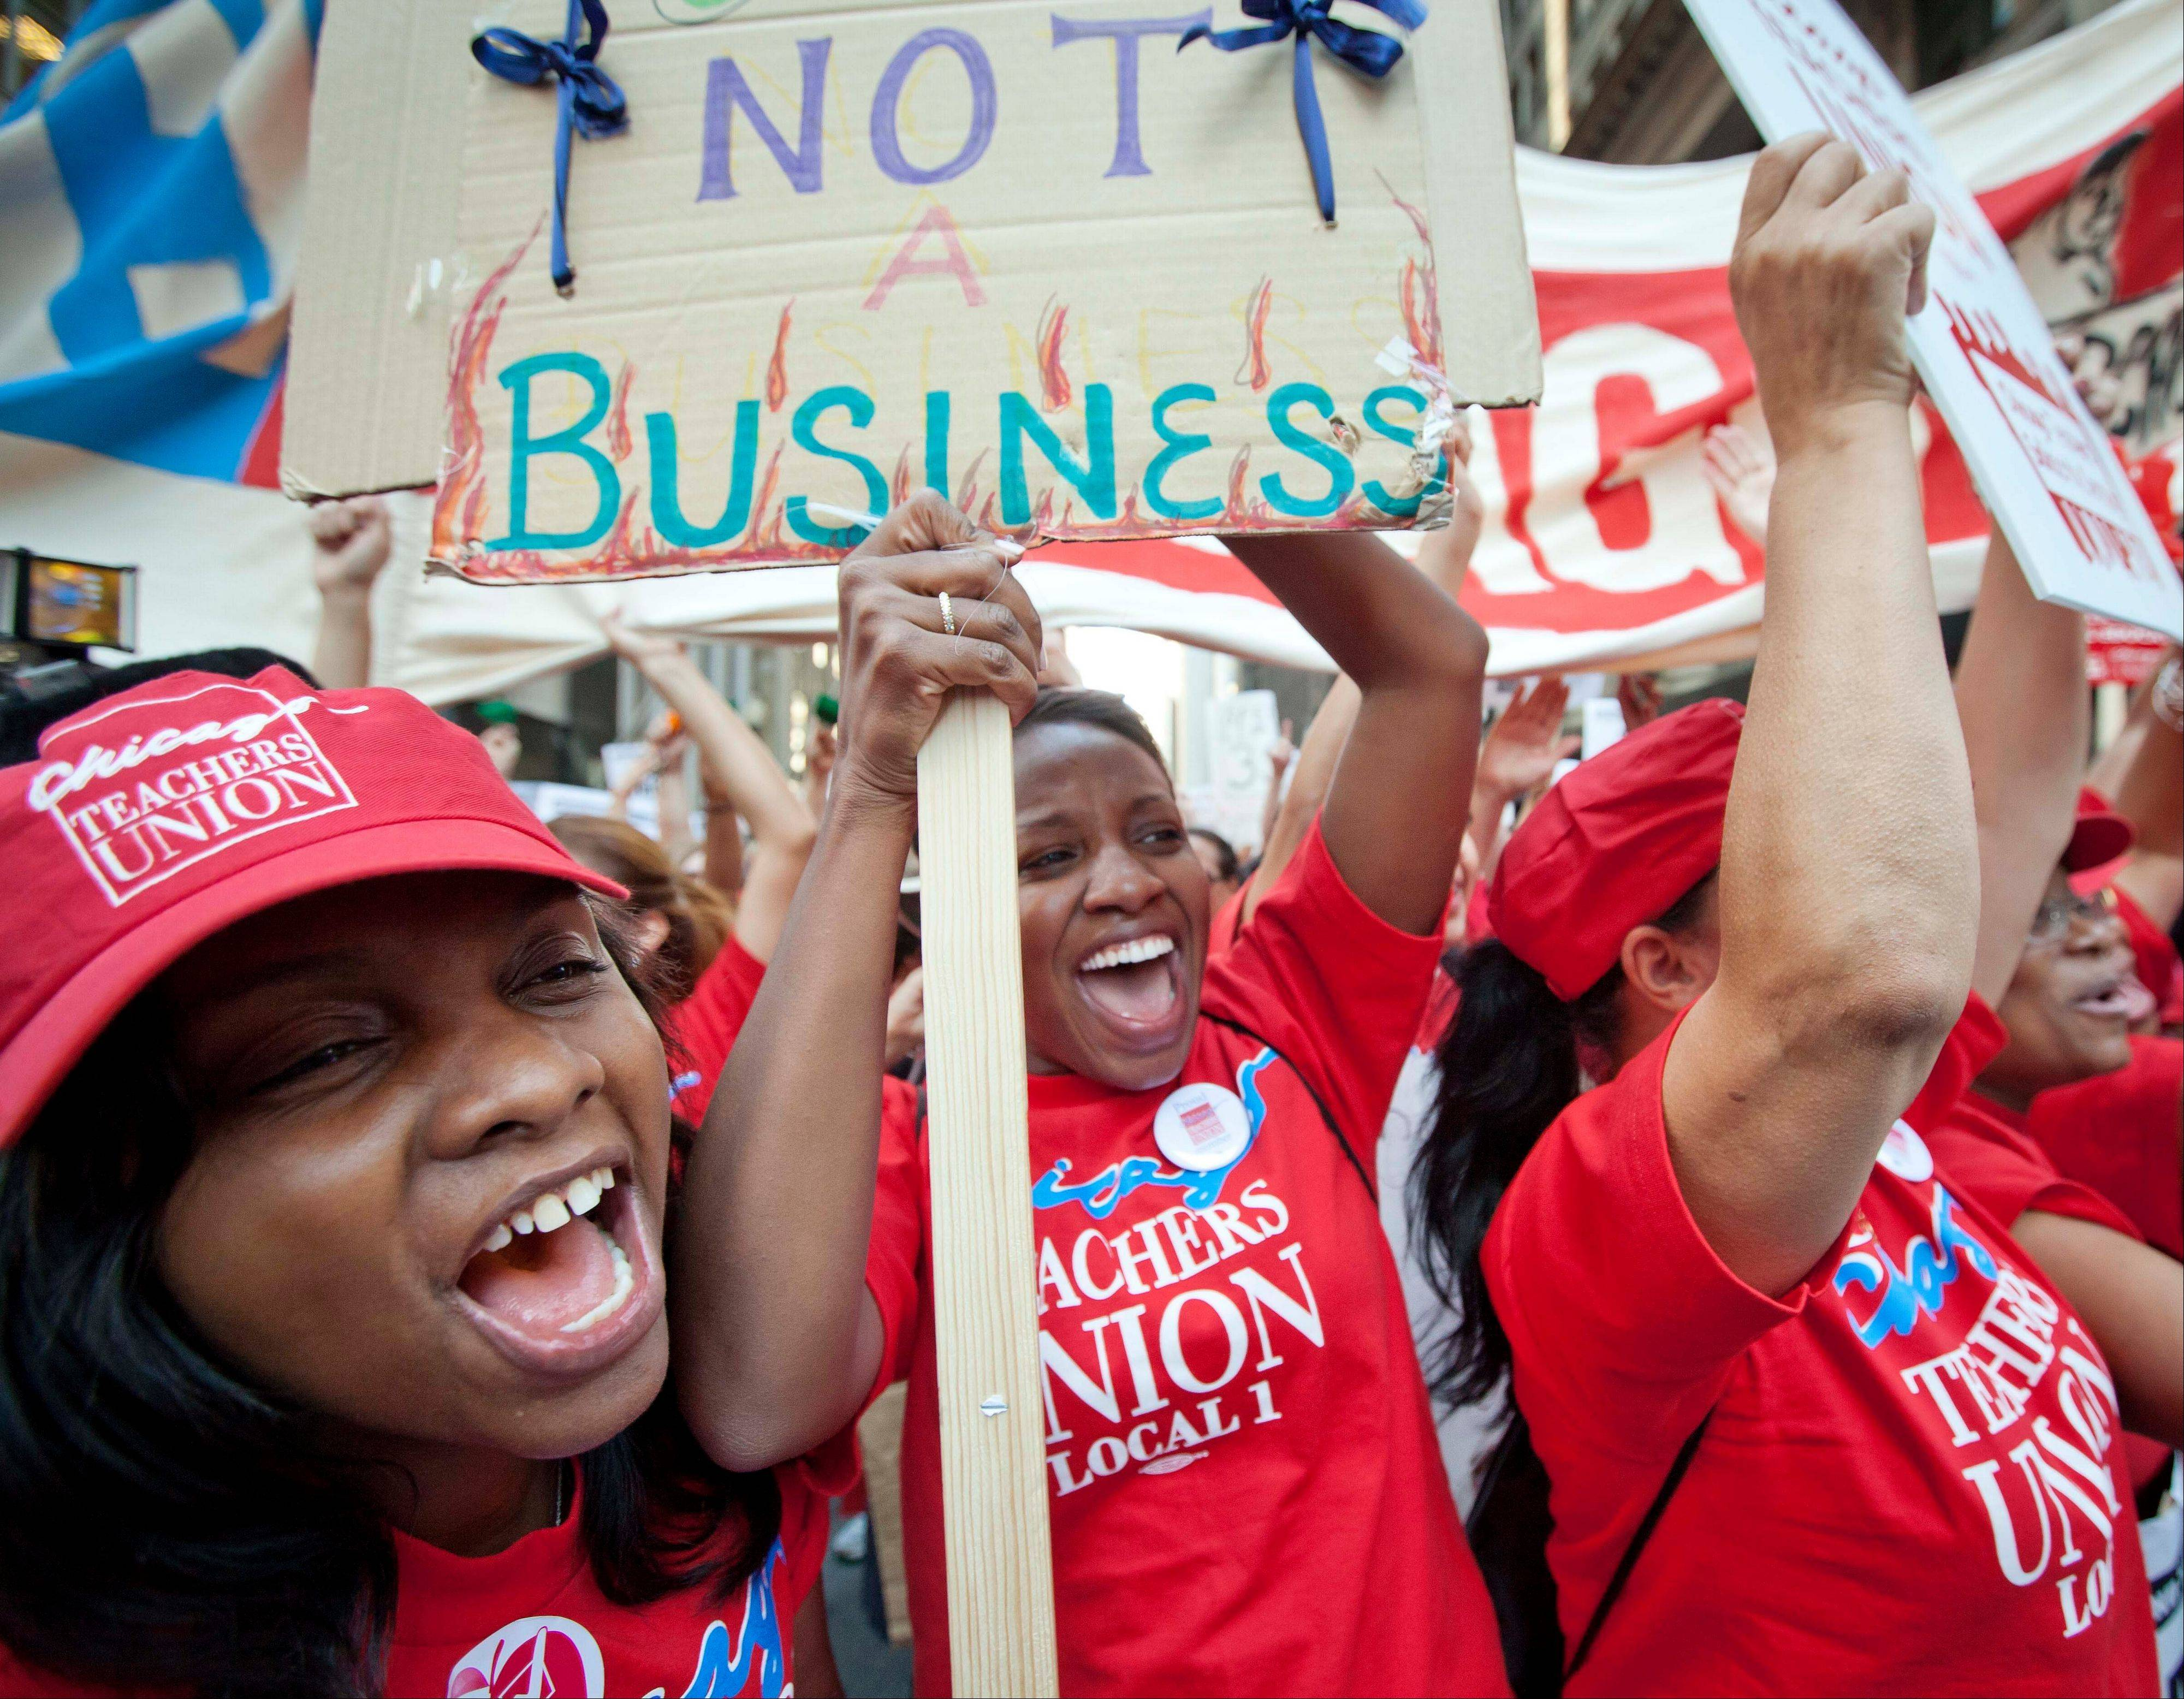 Public school teachers cheer as Chicago Teachers Union President Karen Lewis, unseen, arrives unexpectedly to address a rally of thousands of teachers gathered for the second consecutive day outside the Chicago Board of Education district headquarters on Tuesday, Sept. 11, 2012 in Chicago.